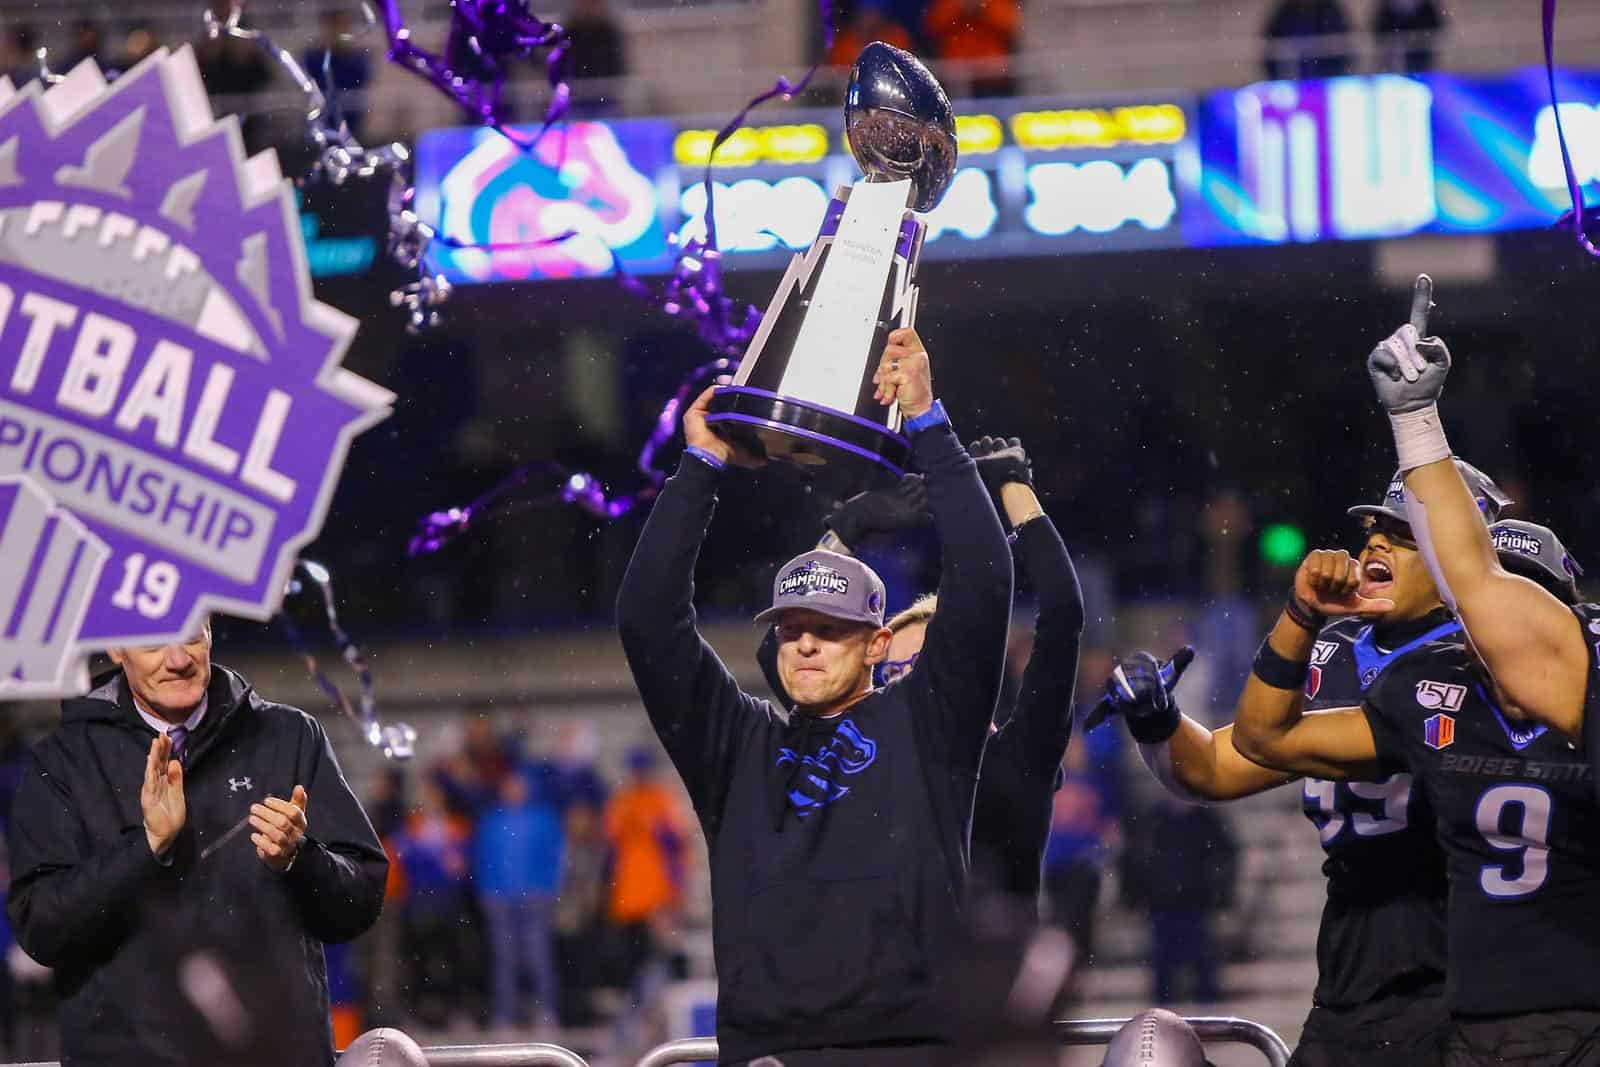 Mountain West football schedule to include 8 conference games